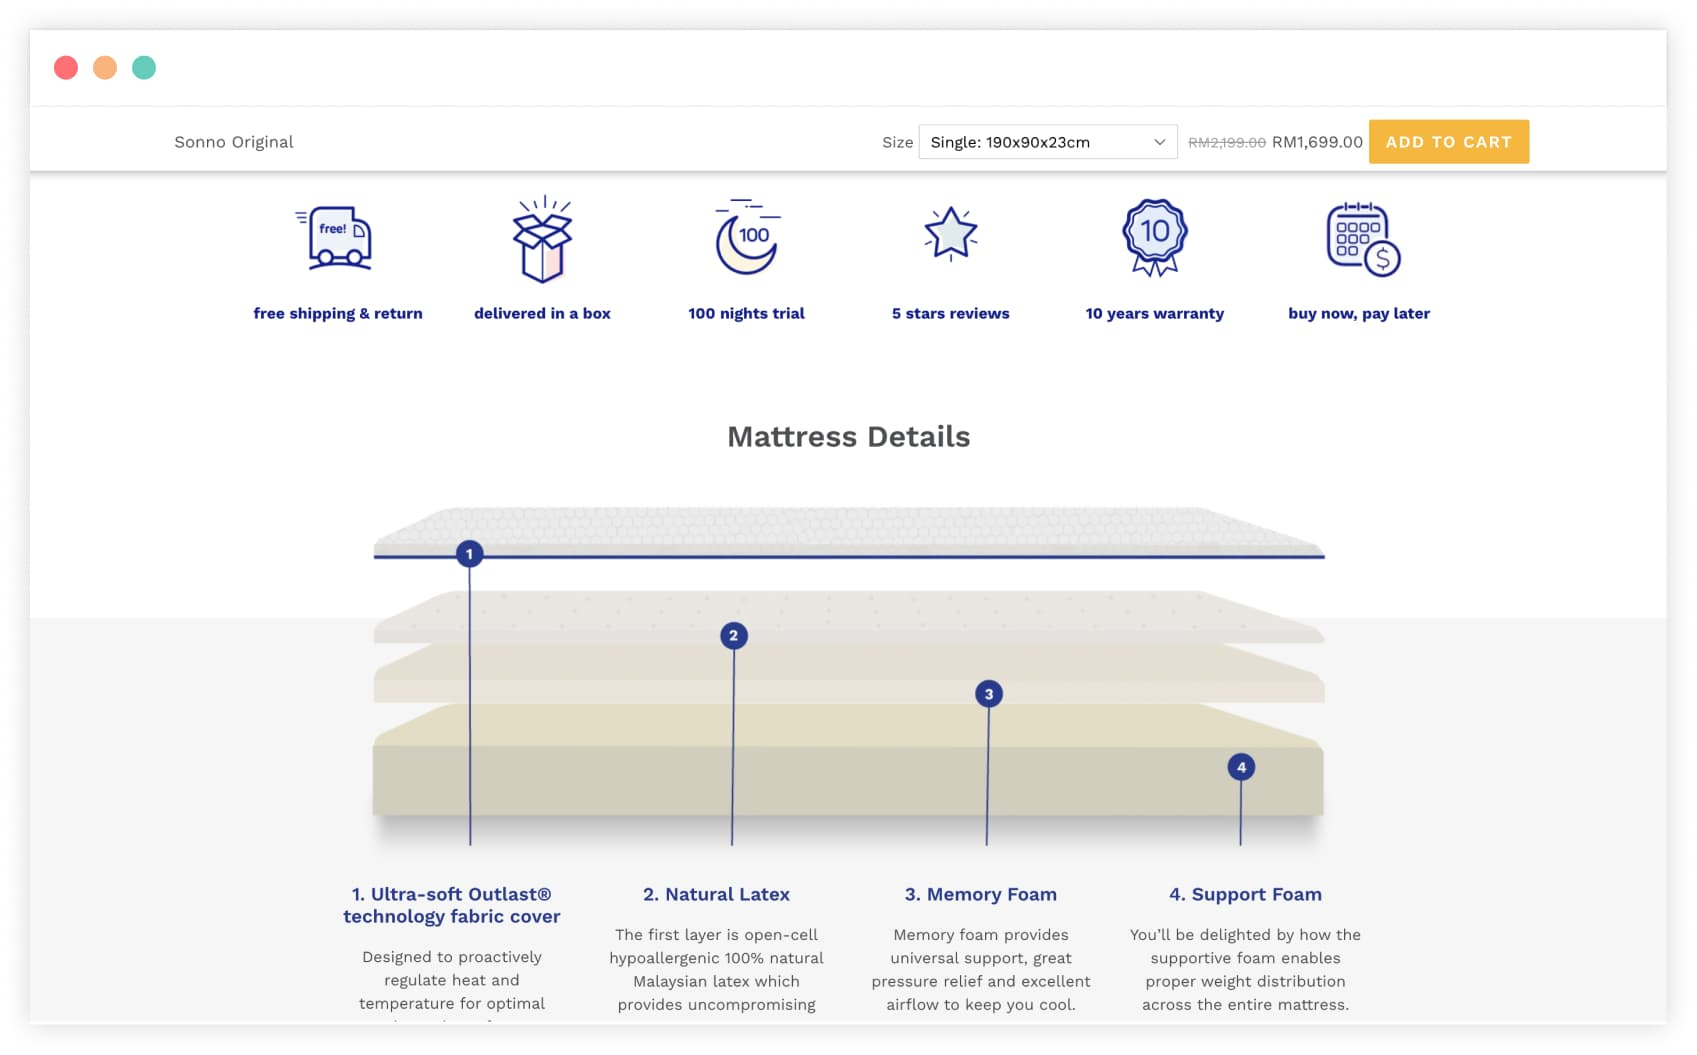 Amore complex product page layout that showcases product features